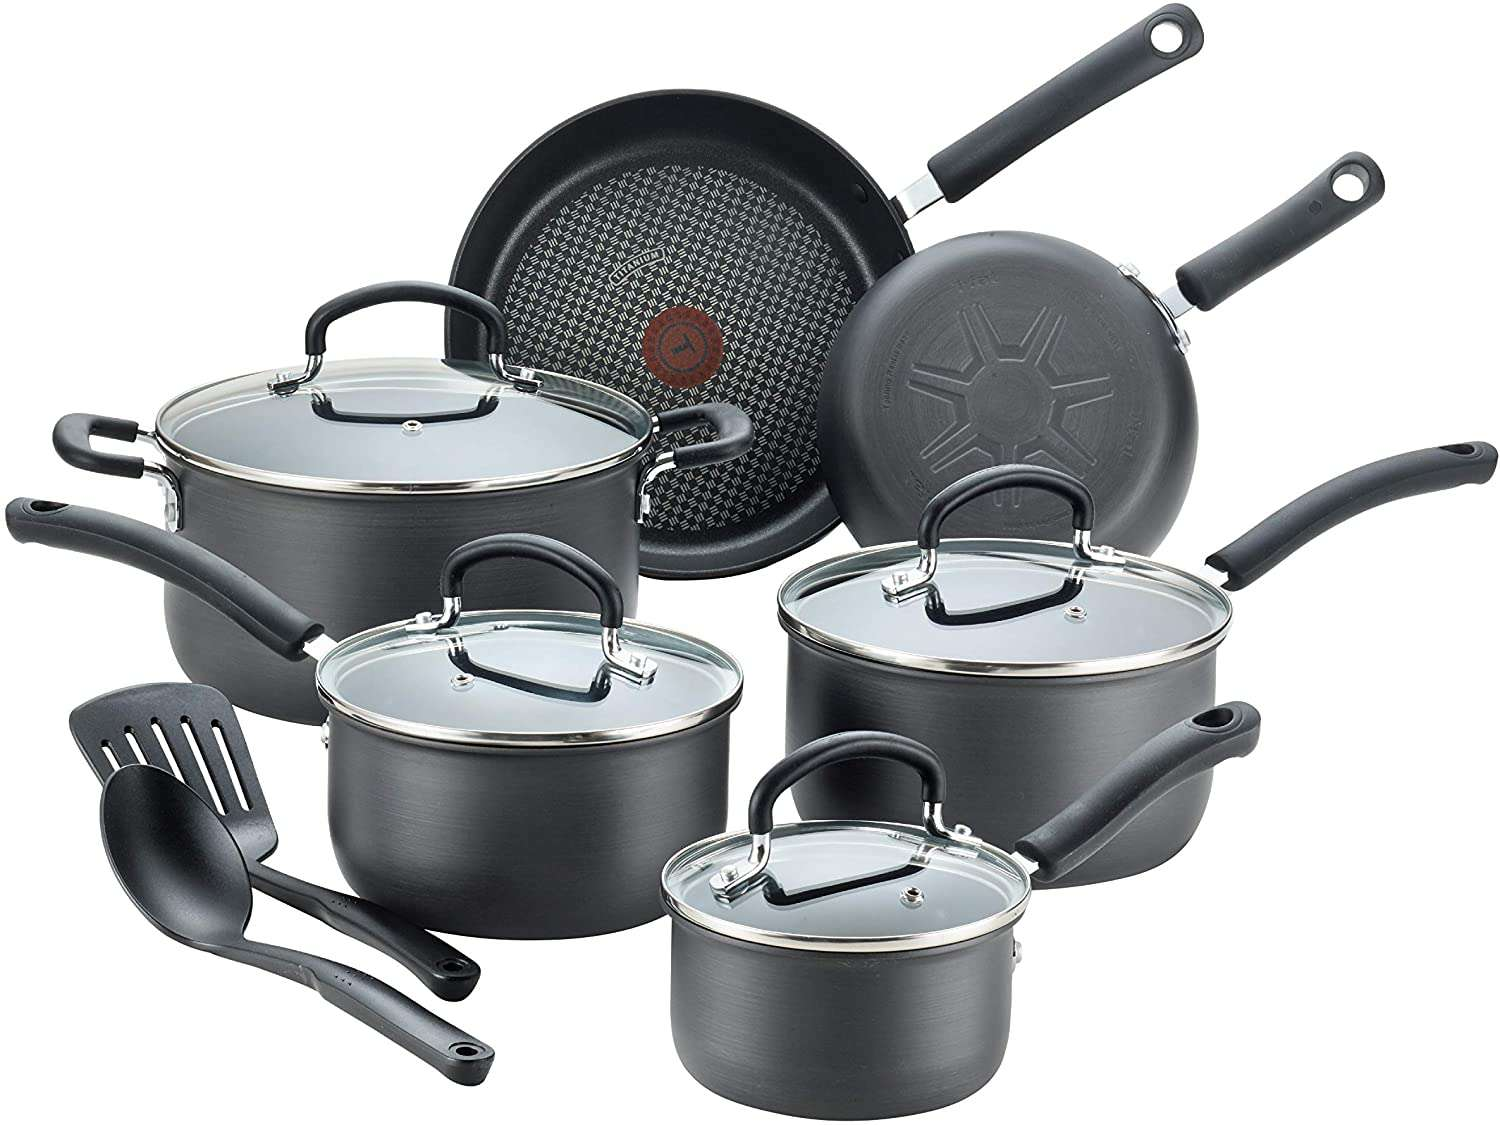 t-fal-advanced-hard-anodized-nonstick-12-piece-cookware